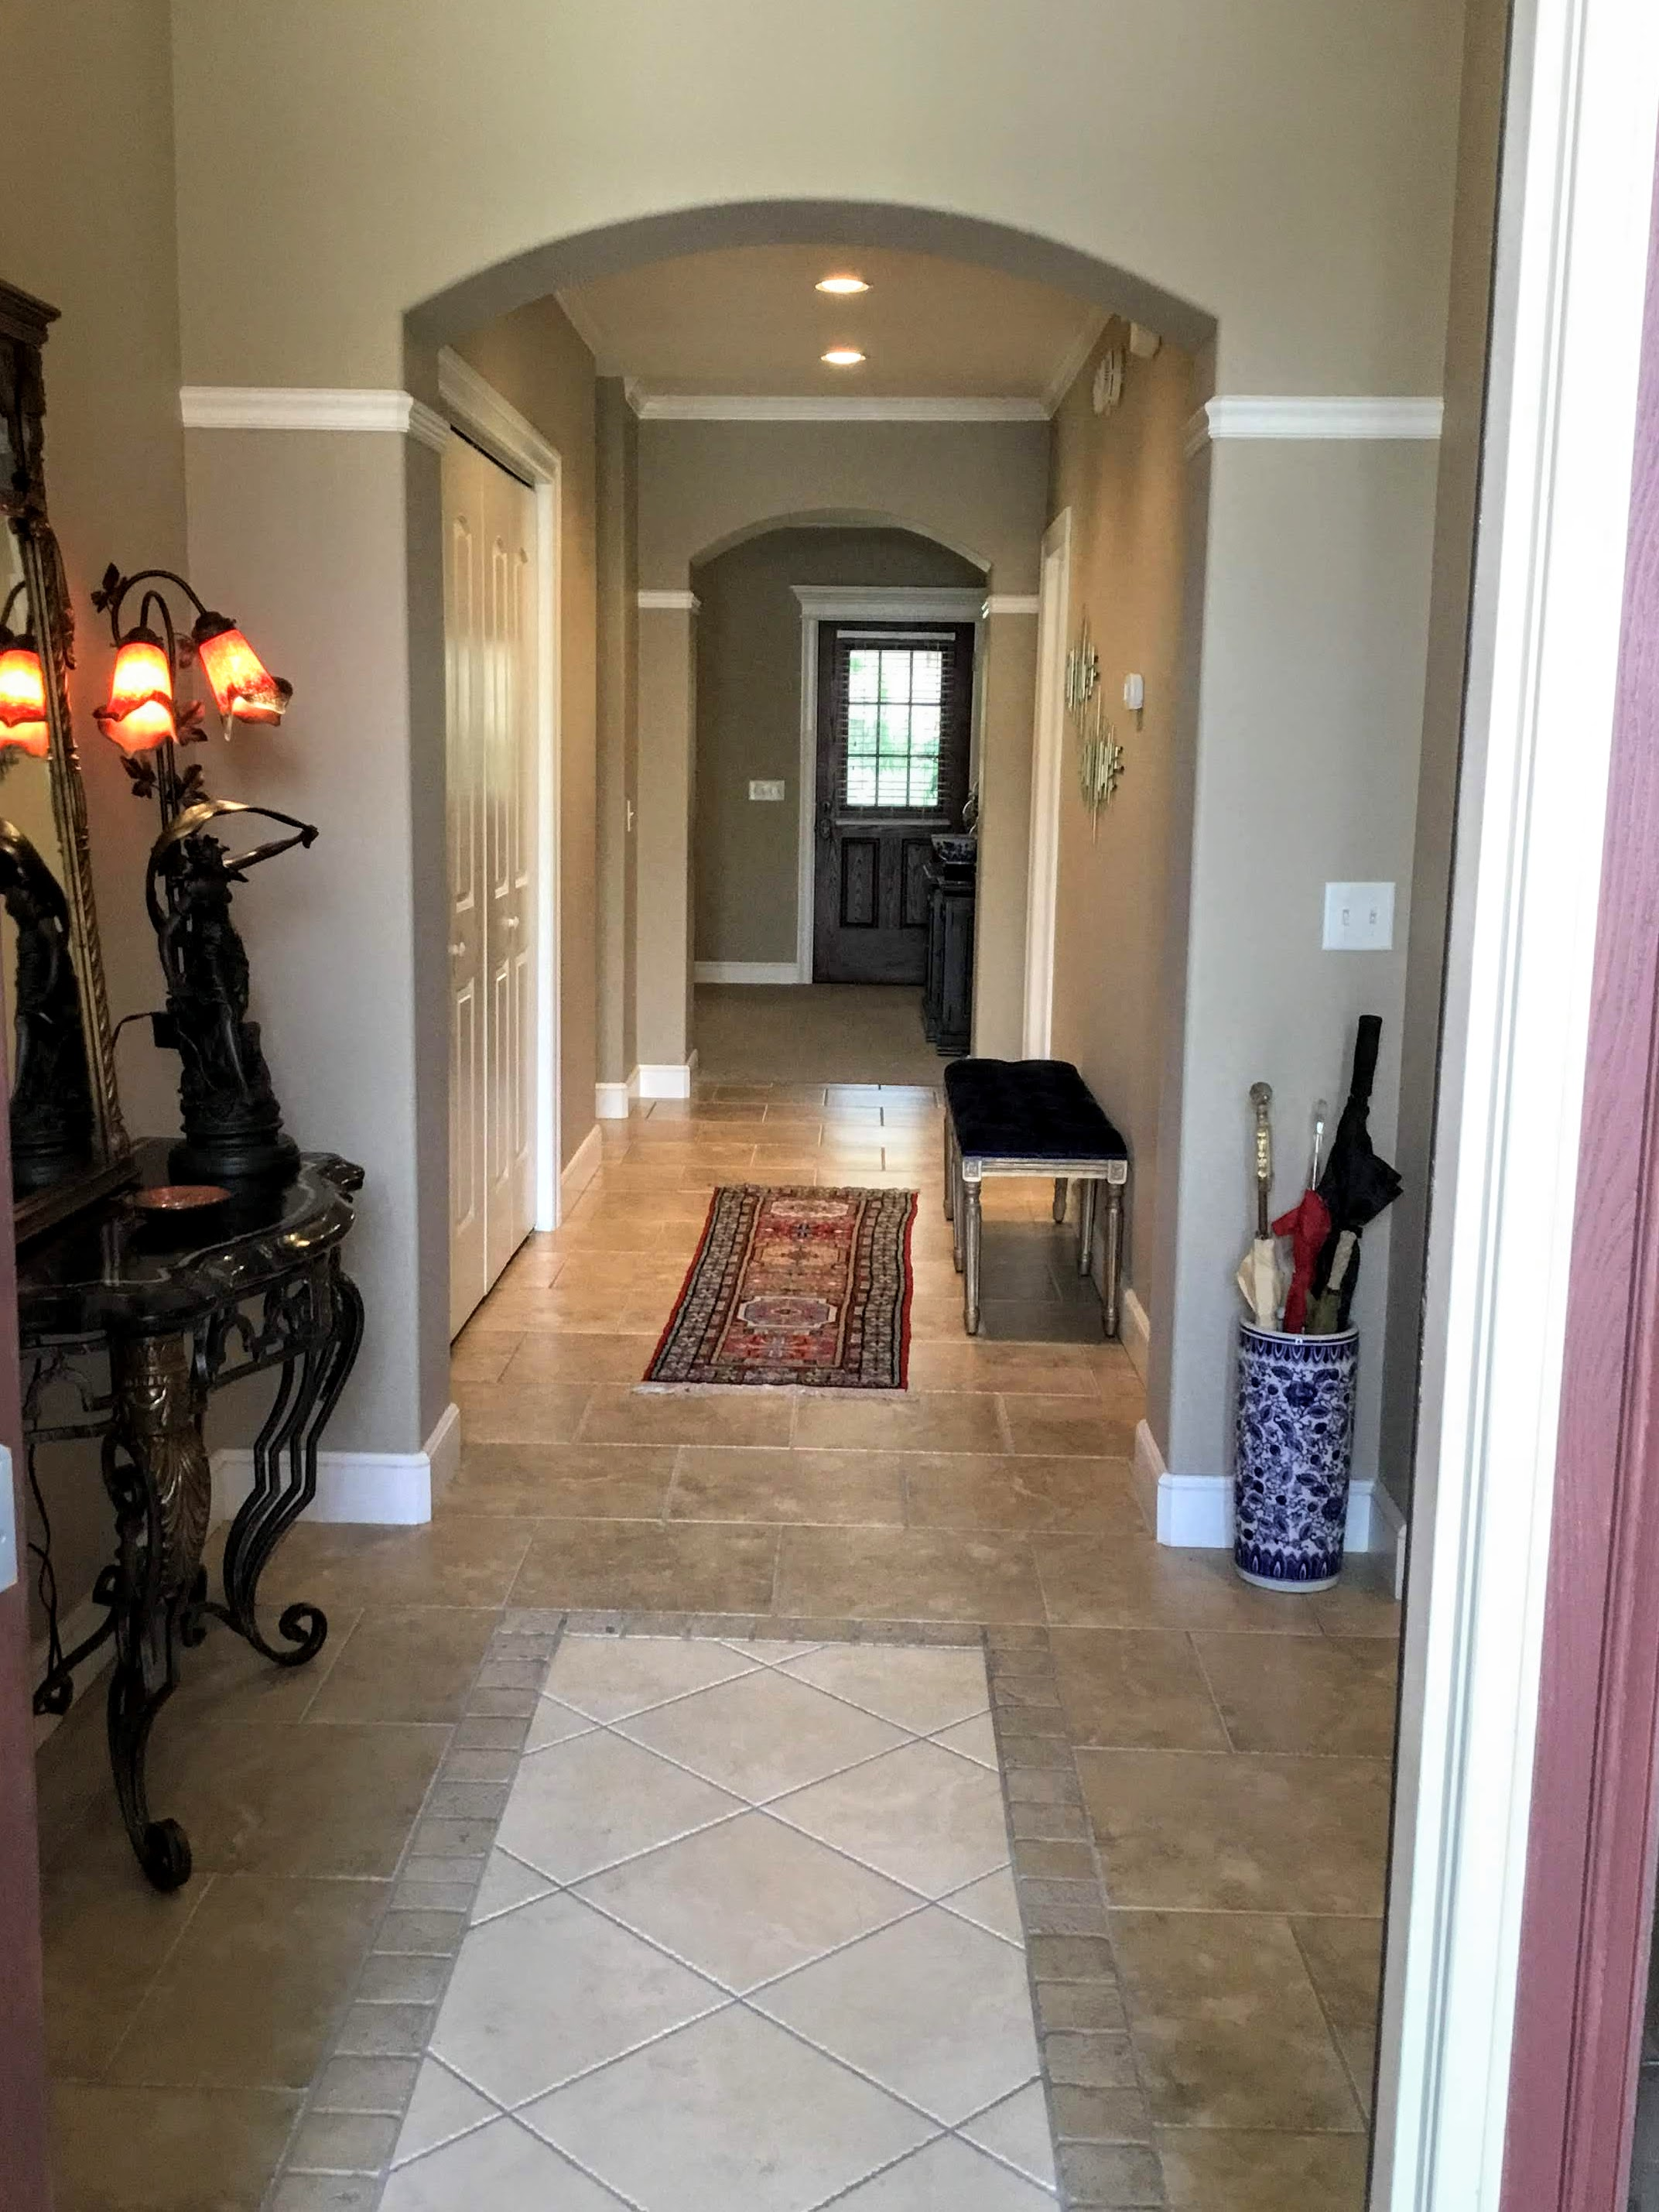 Staging Tulsa - Zarrow Pointe Villas Entry Hall Full.jpg